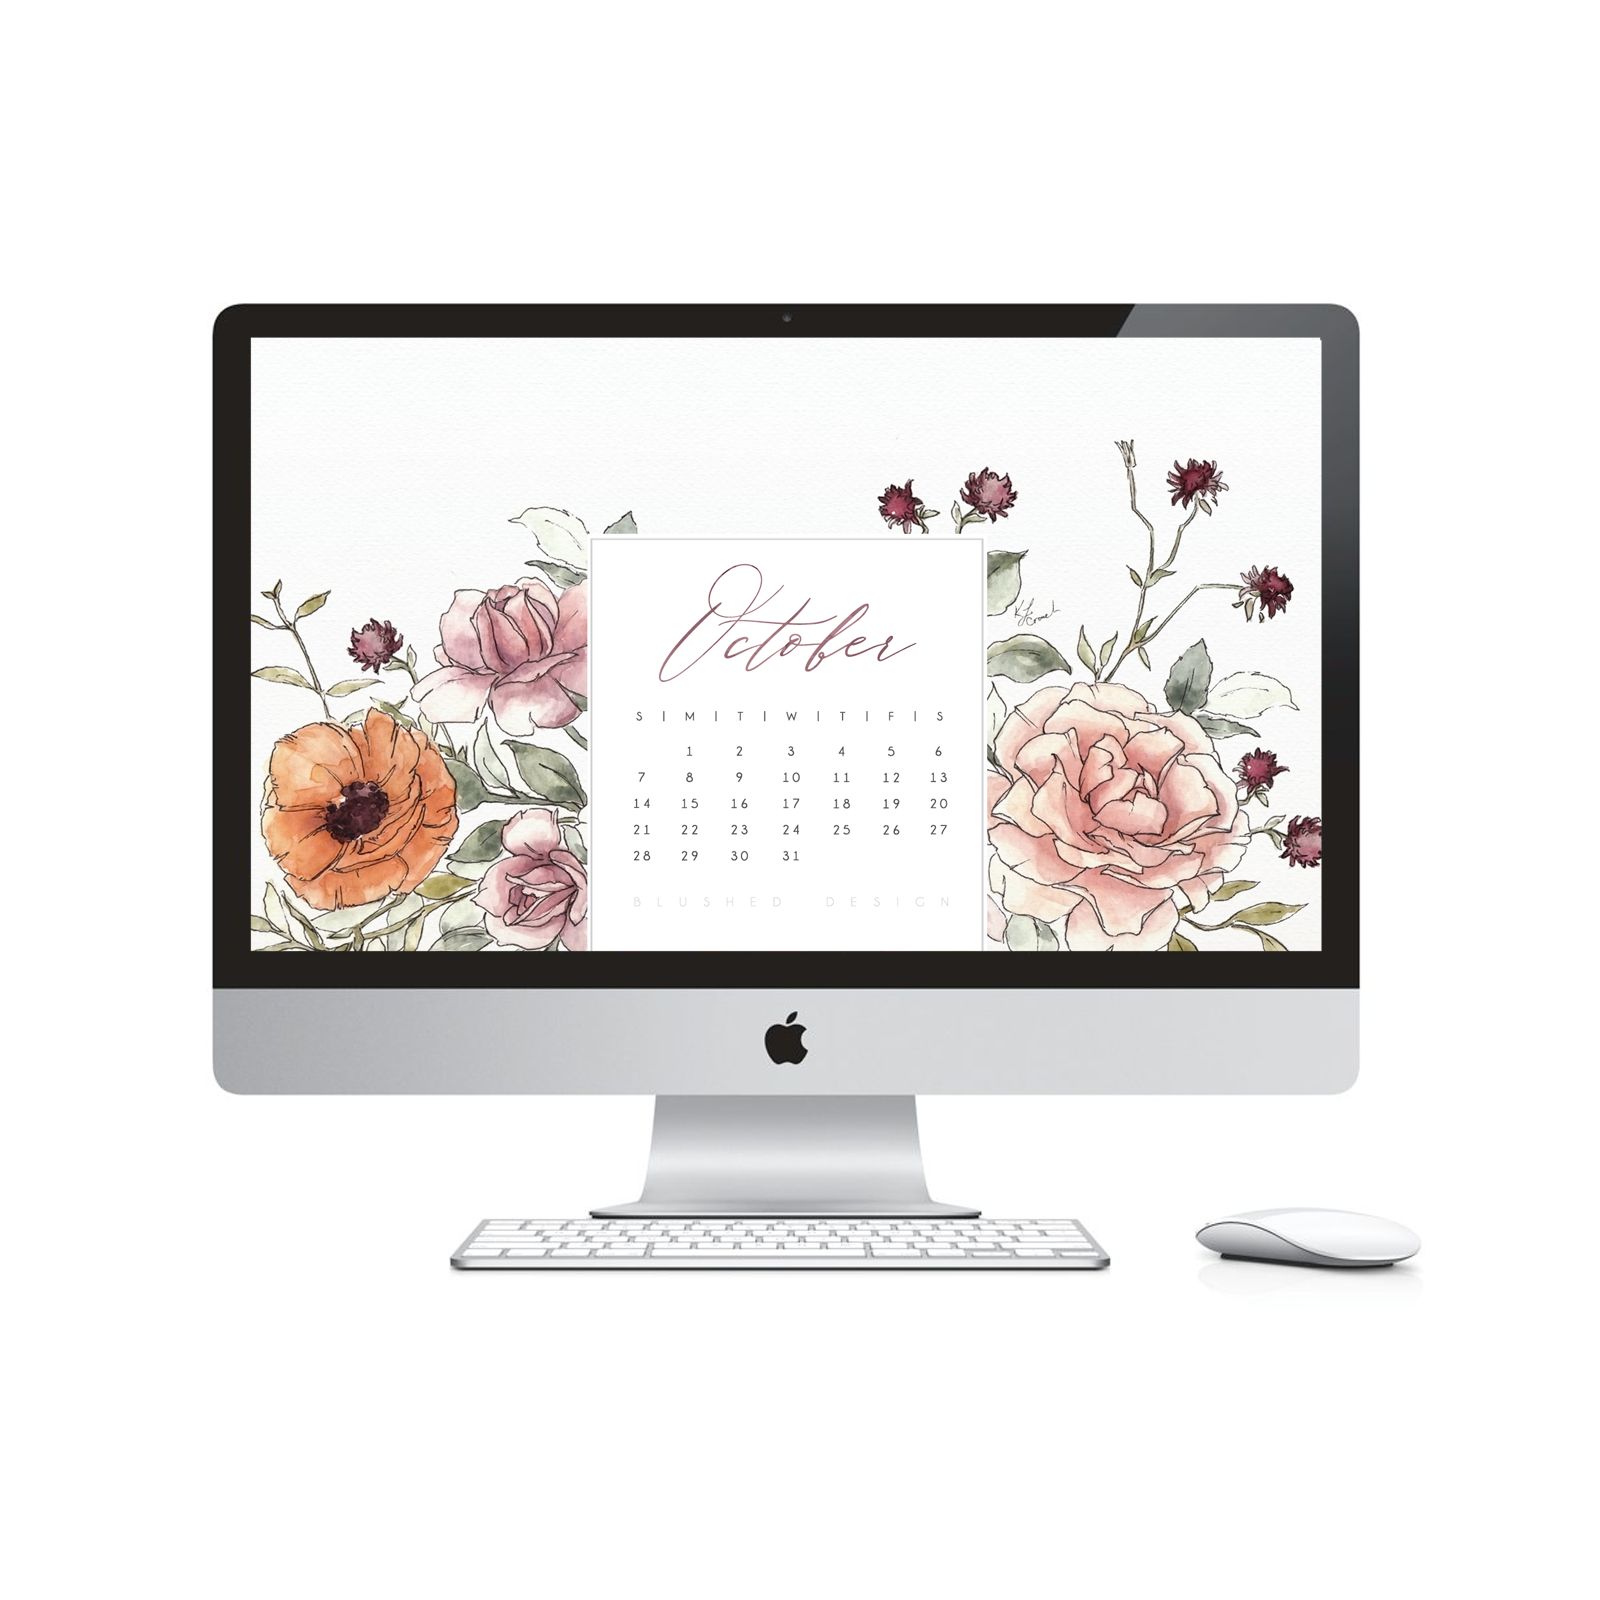 Watch my watercolor flower video tutorial for how I created the artwork for this month's desktop calendar!  Which is also avaialble as a FREE download #watercolorflowers #watercolortutorial #fallwatercolorflowers